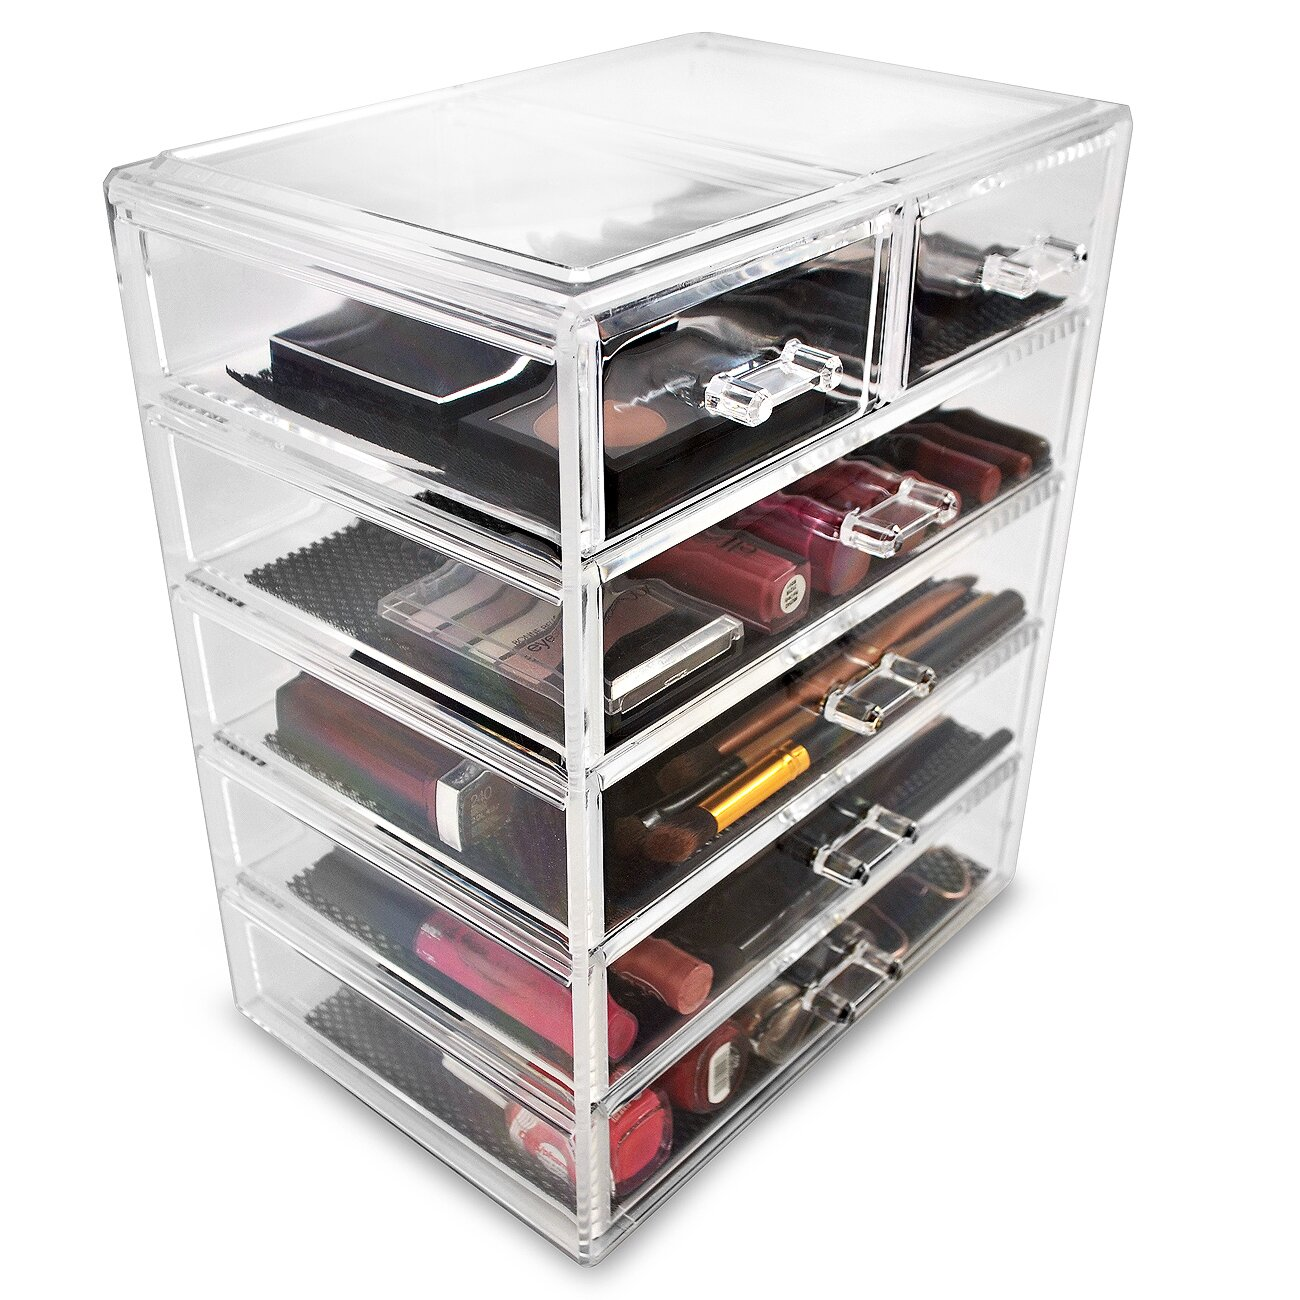 ... International Acrylic 6 Drawer Makeup Organizer with Removable Drawers